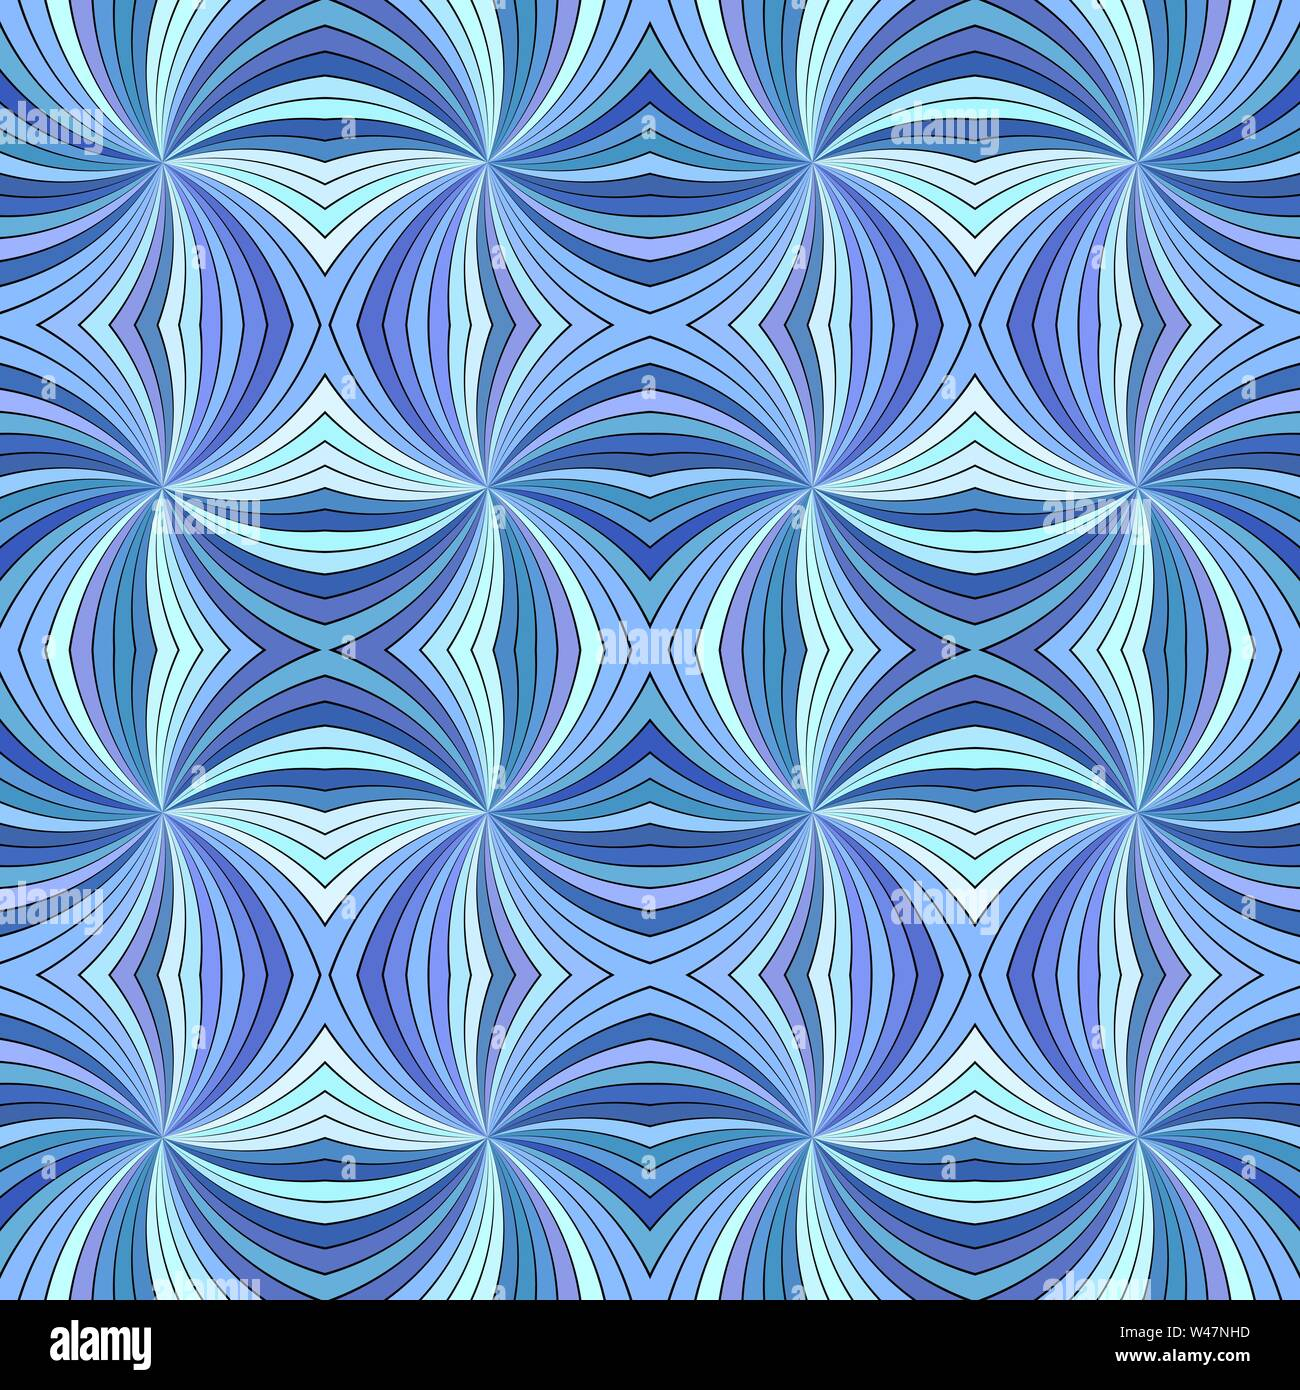 Blue seamless abstract hypnotic swirl stripe pattern background - vector ray burst design - Stock Image